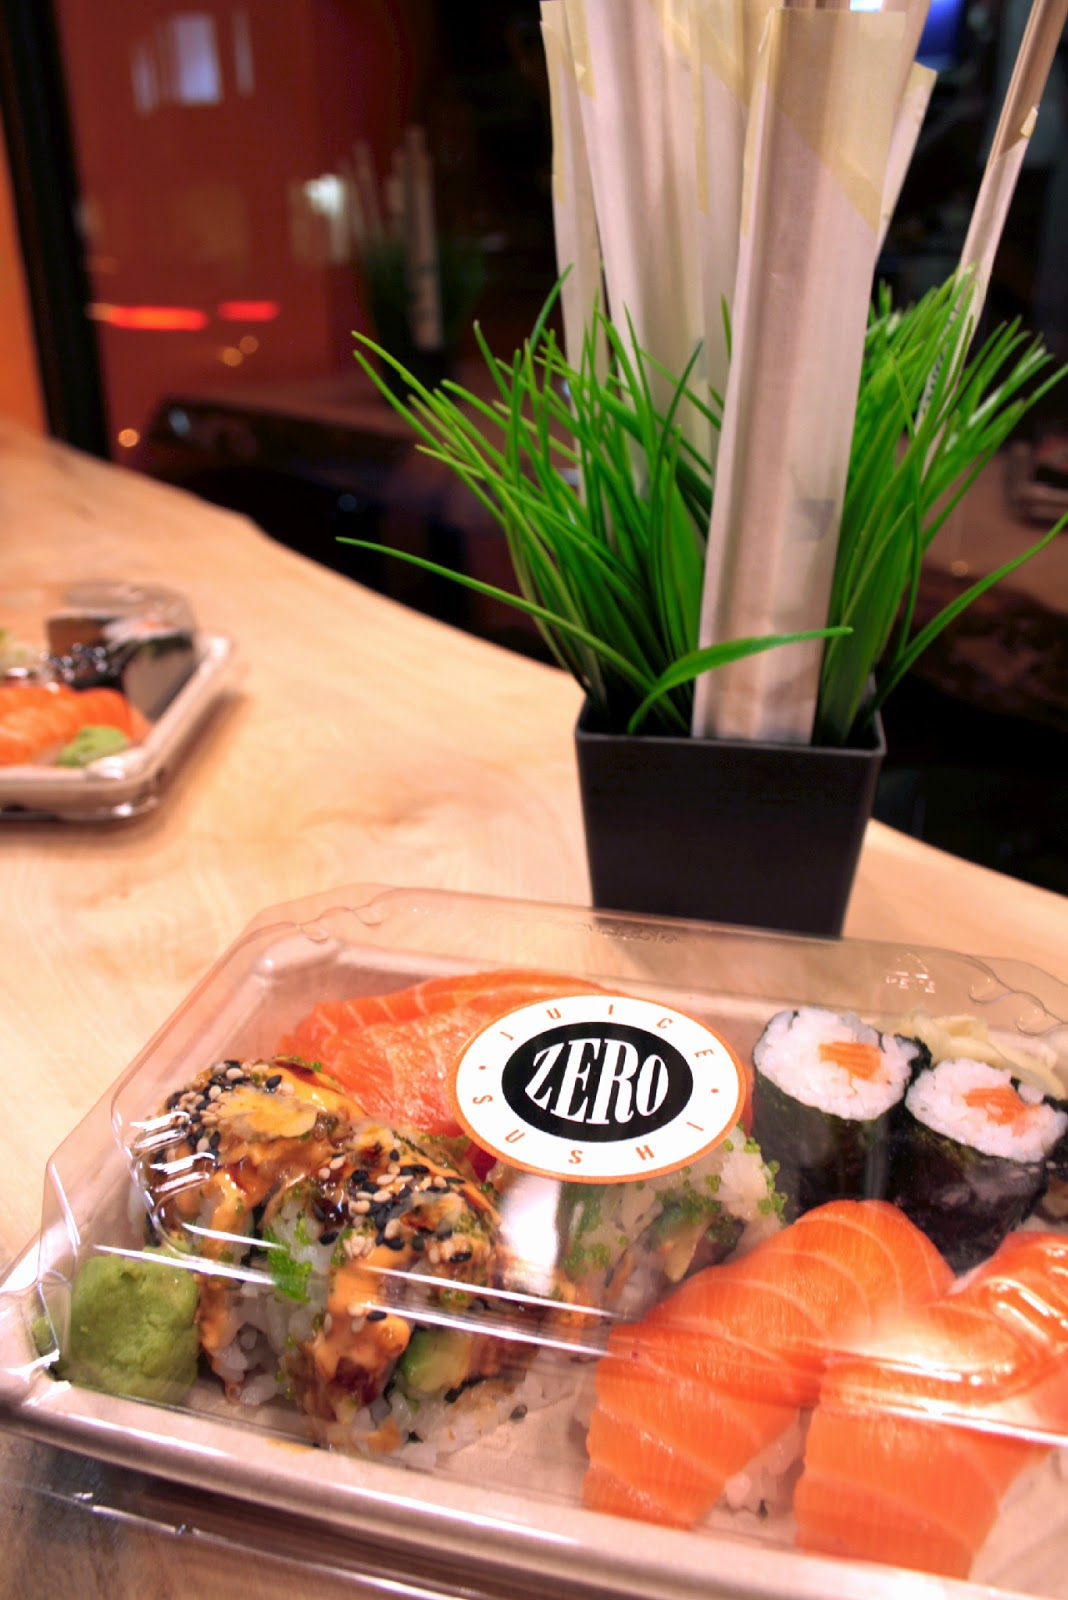 Zero sushi and juice - right in the centre of Berkhamsted!  They offer excellent quality sushi and fresh juice using the best quality ingredients